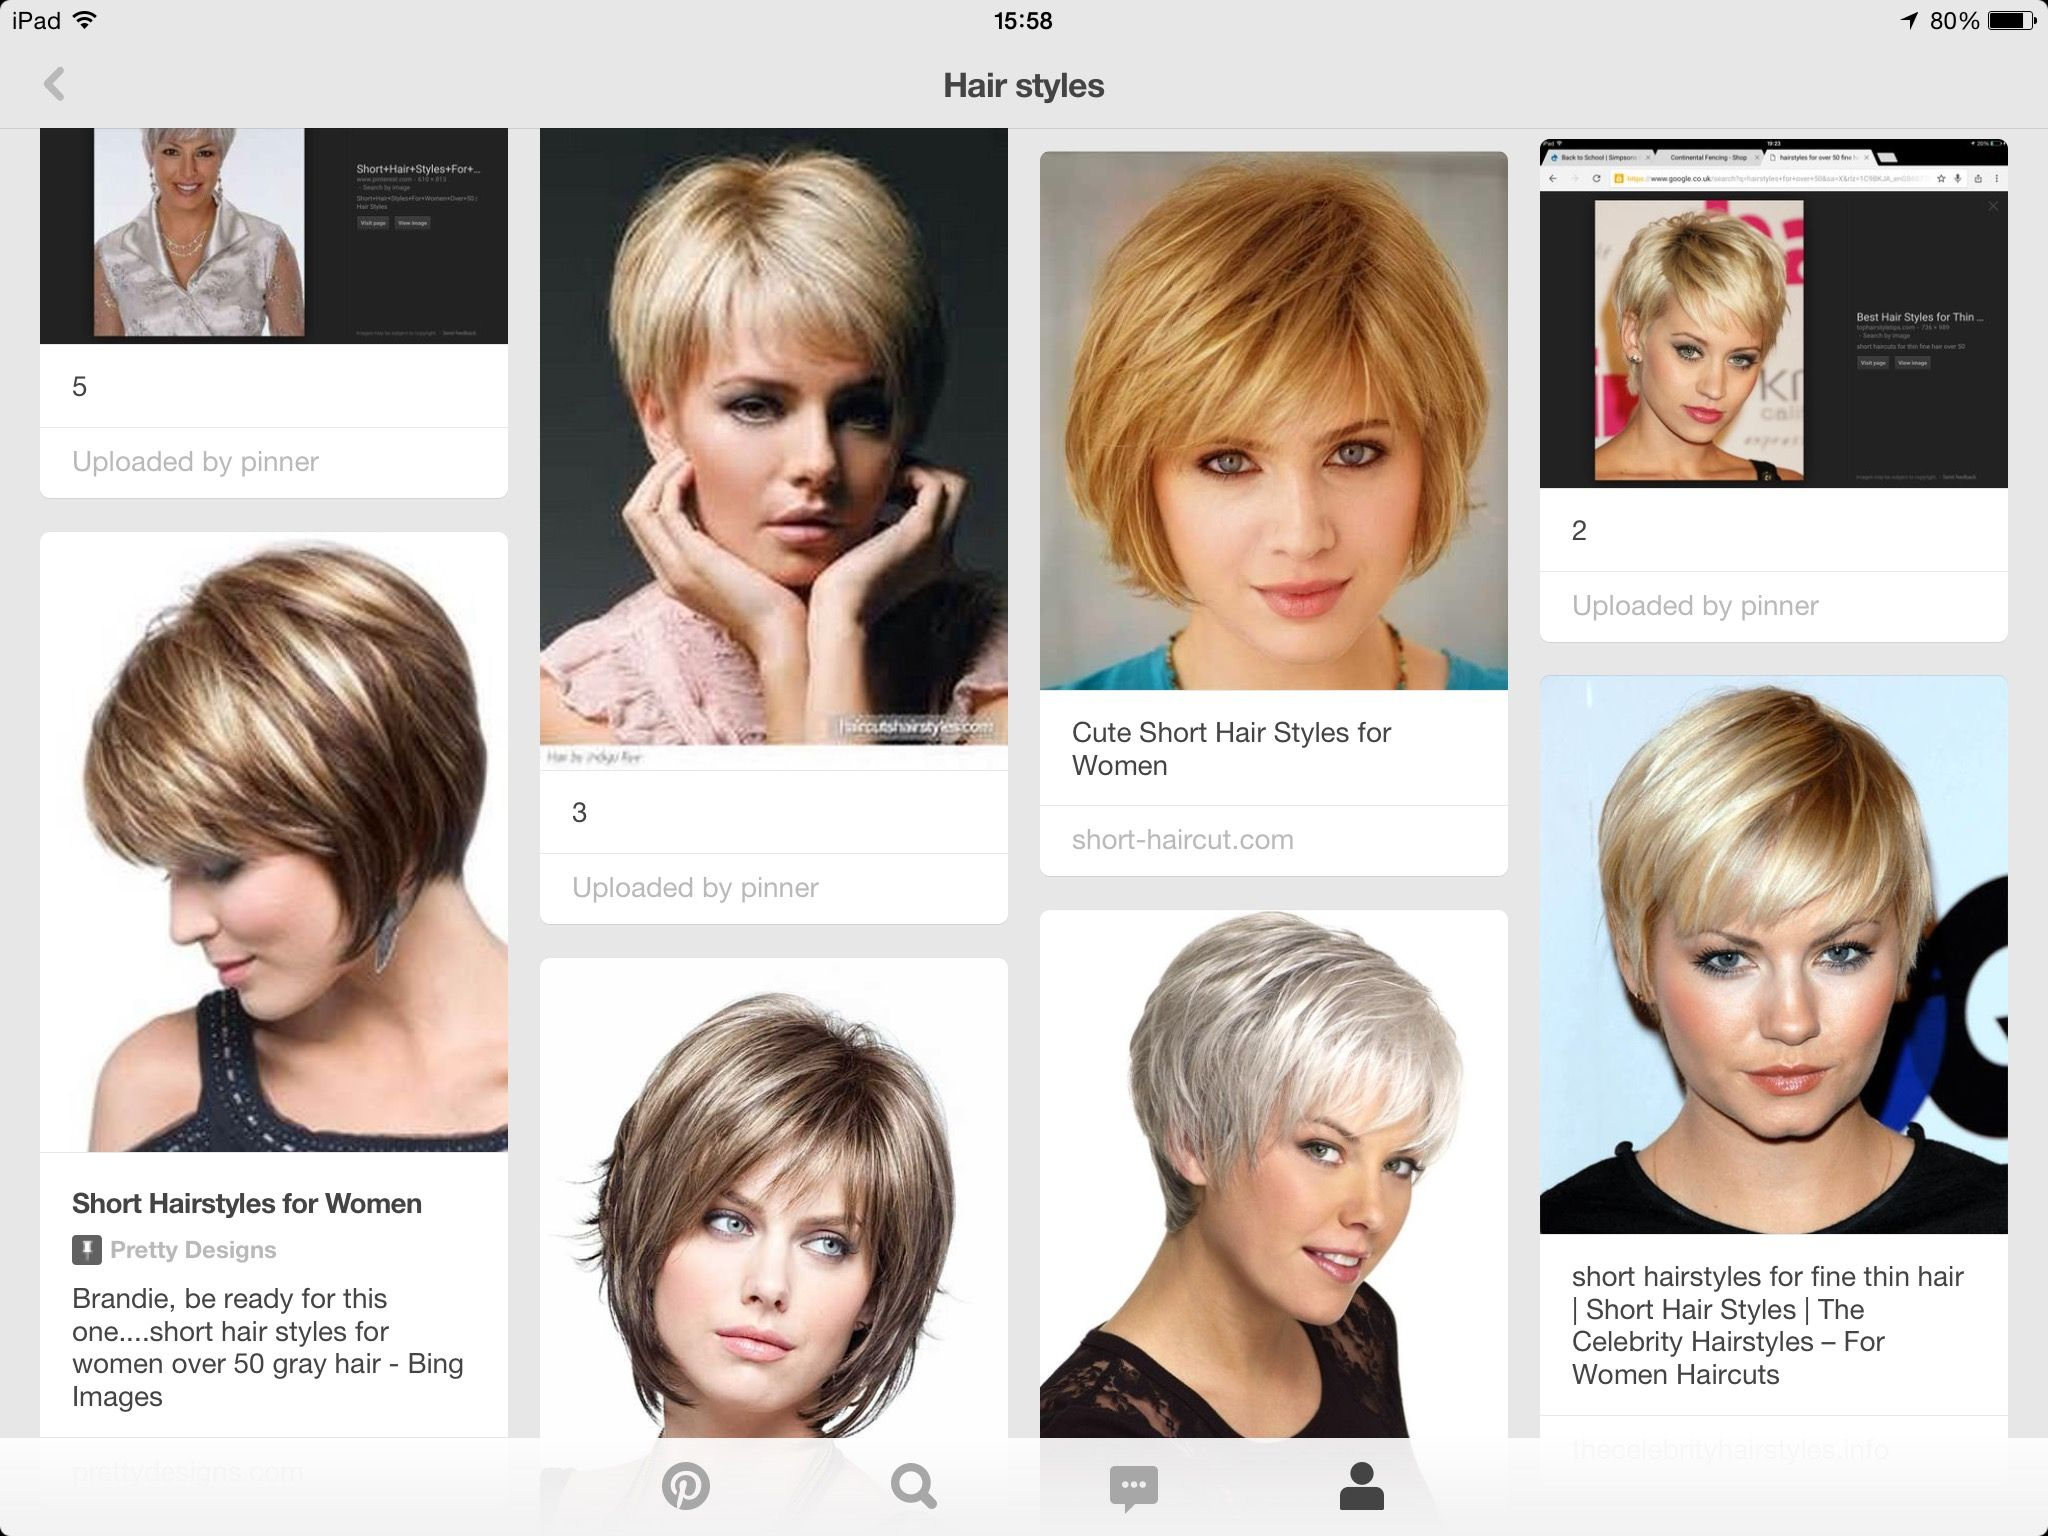 Haircut styles images pin by tanya edson on hair styles  pinterest  hair style